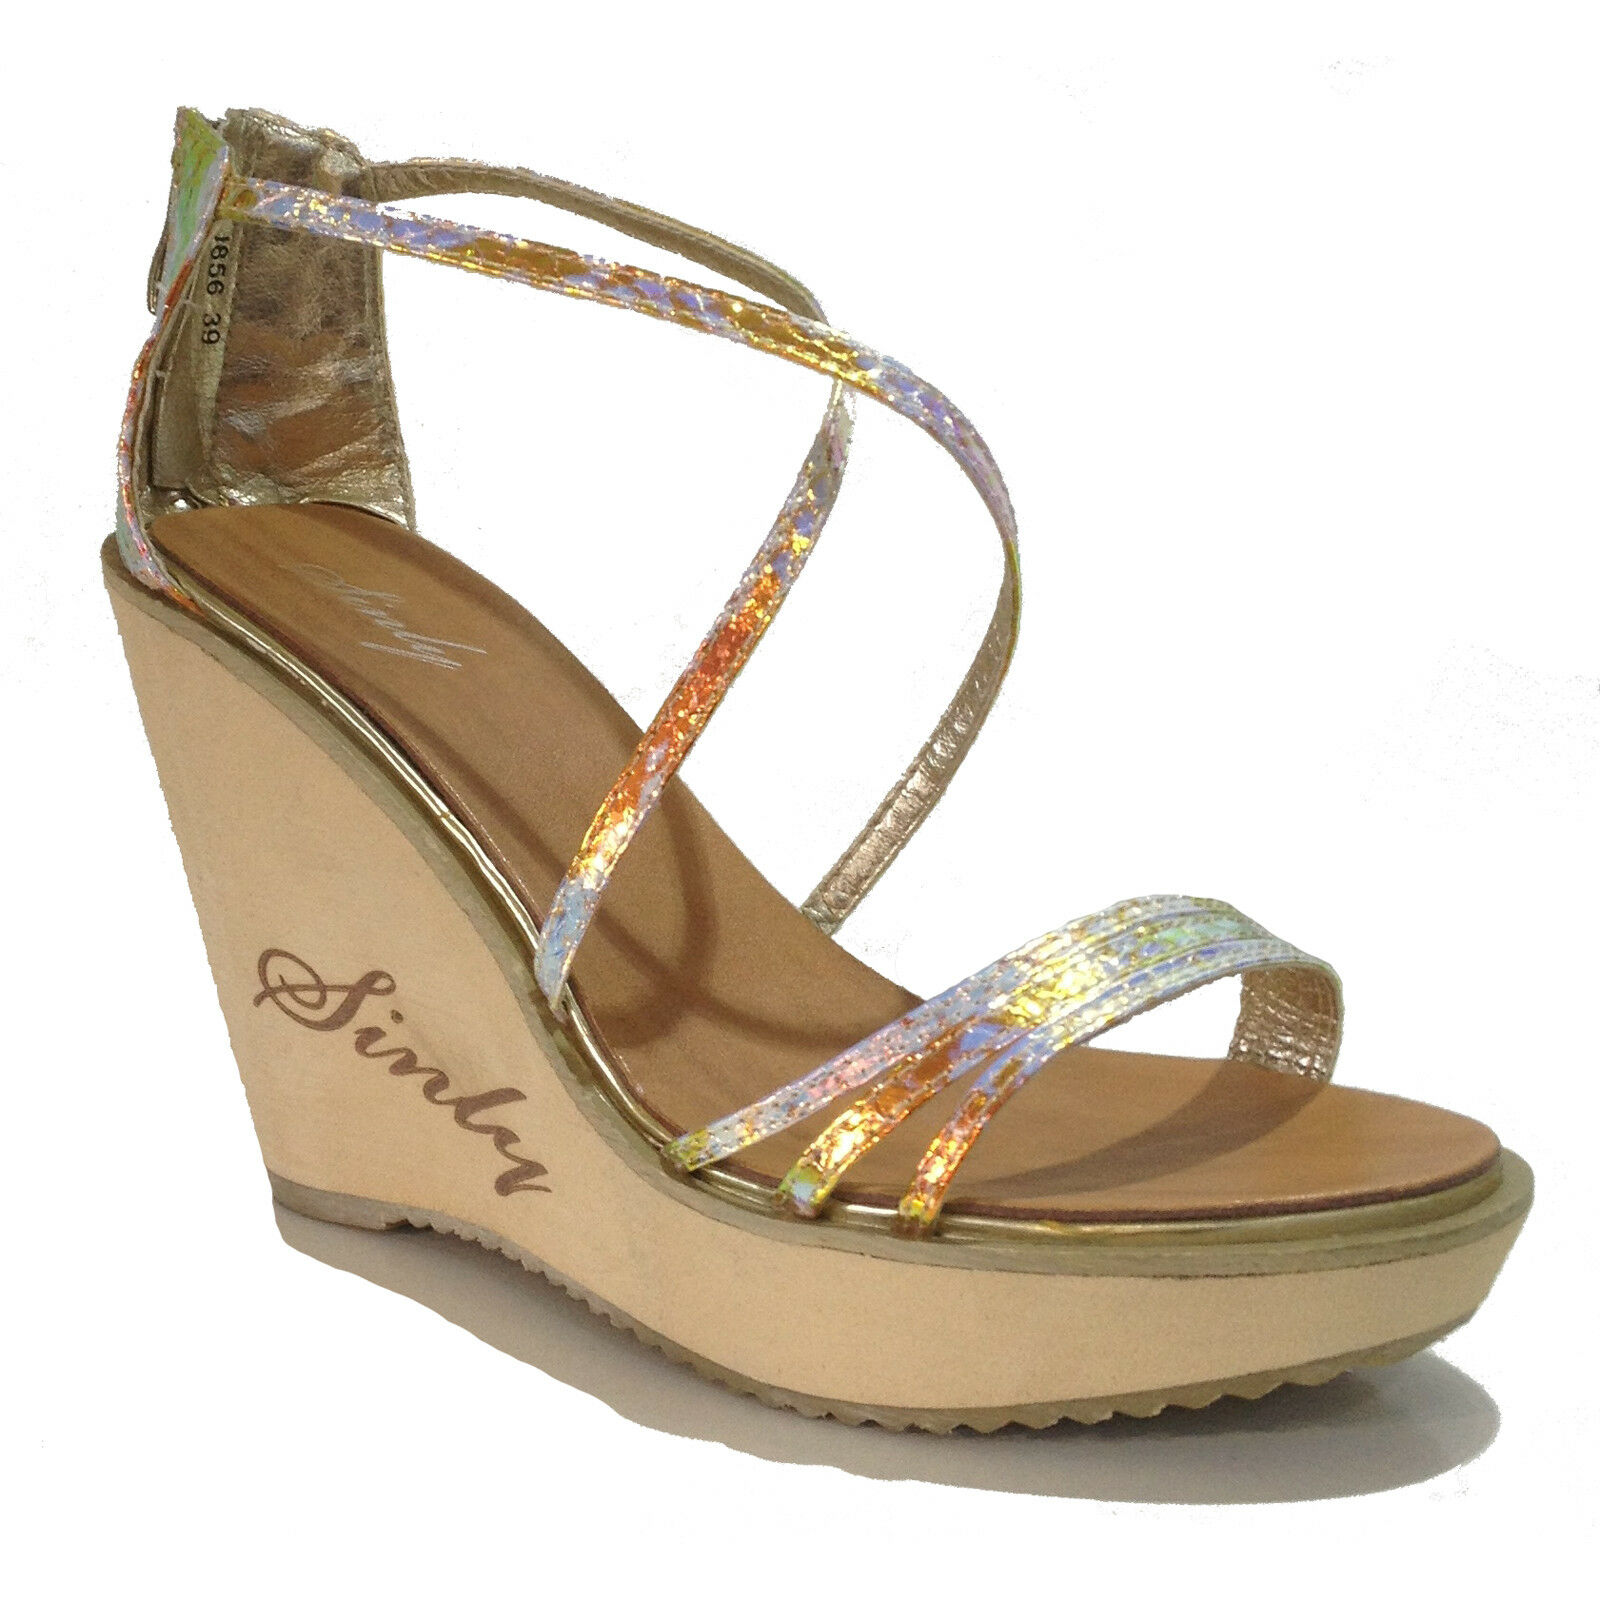 be2a635647 FRYE NAOMI STRAPPY LEATHER T-STRAP SANDALS - PINE NEEDLE - - - 6.5M ...